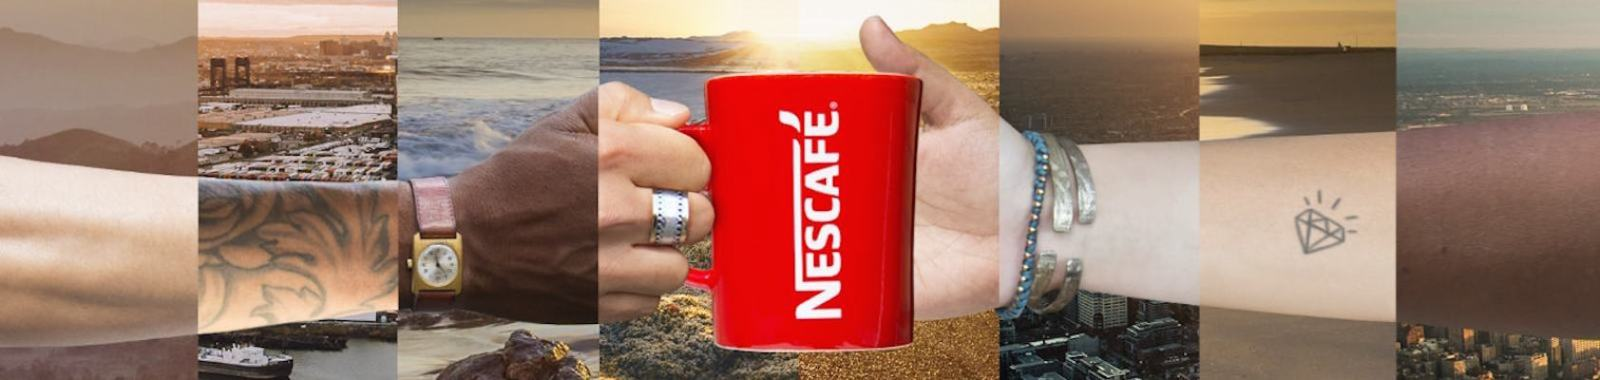 nestle nescafe